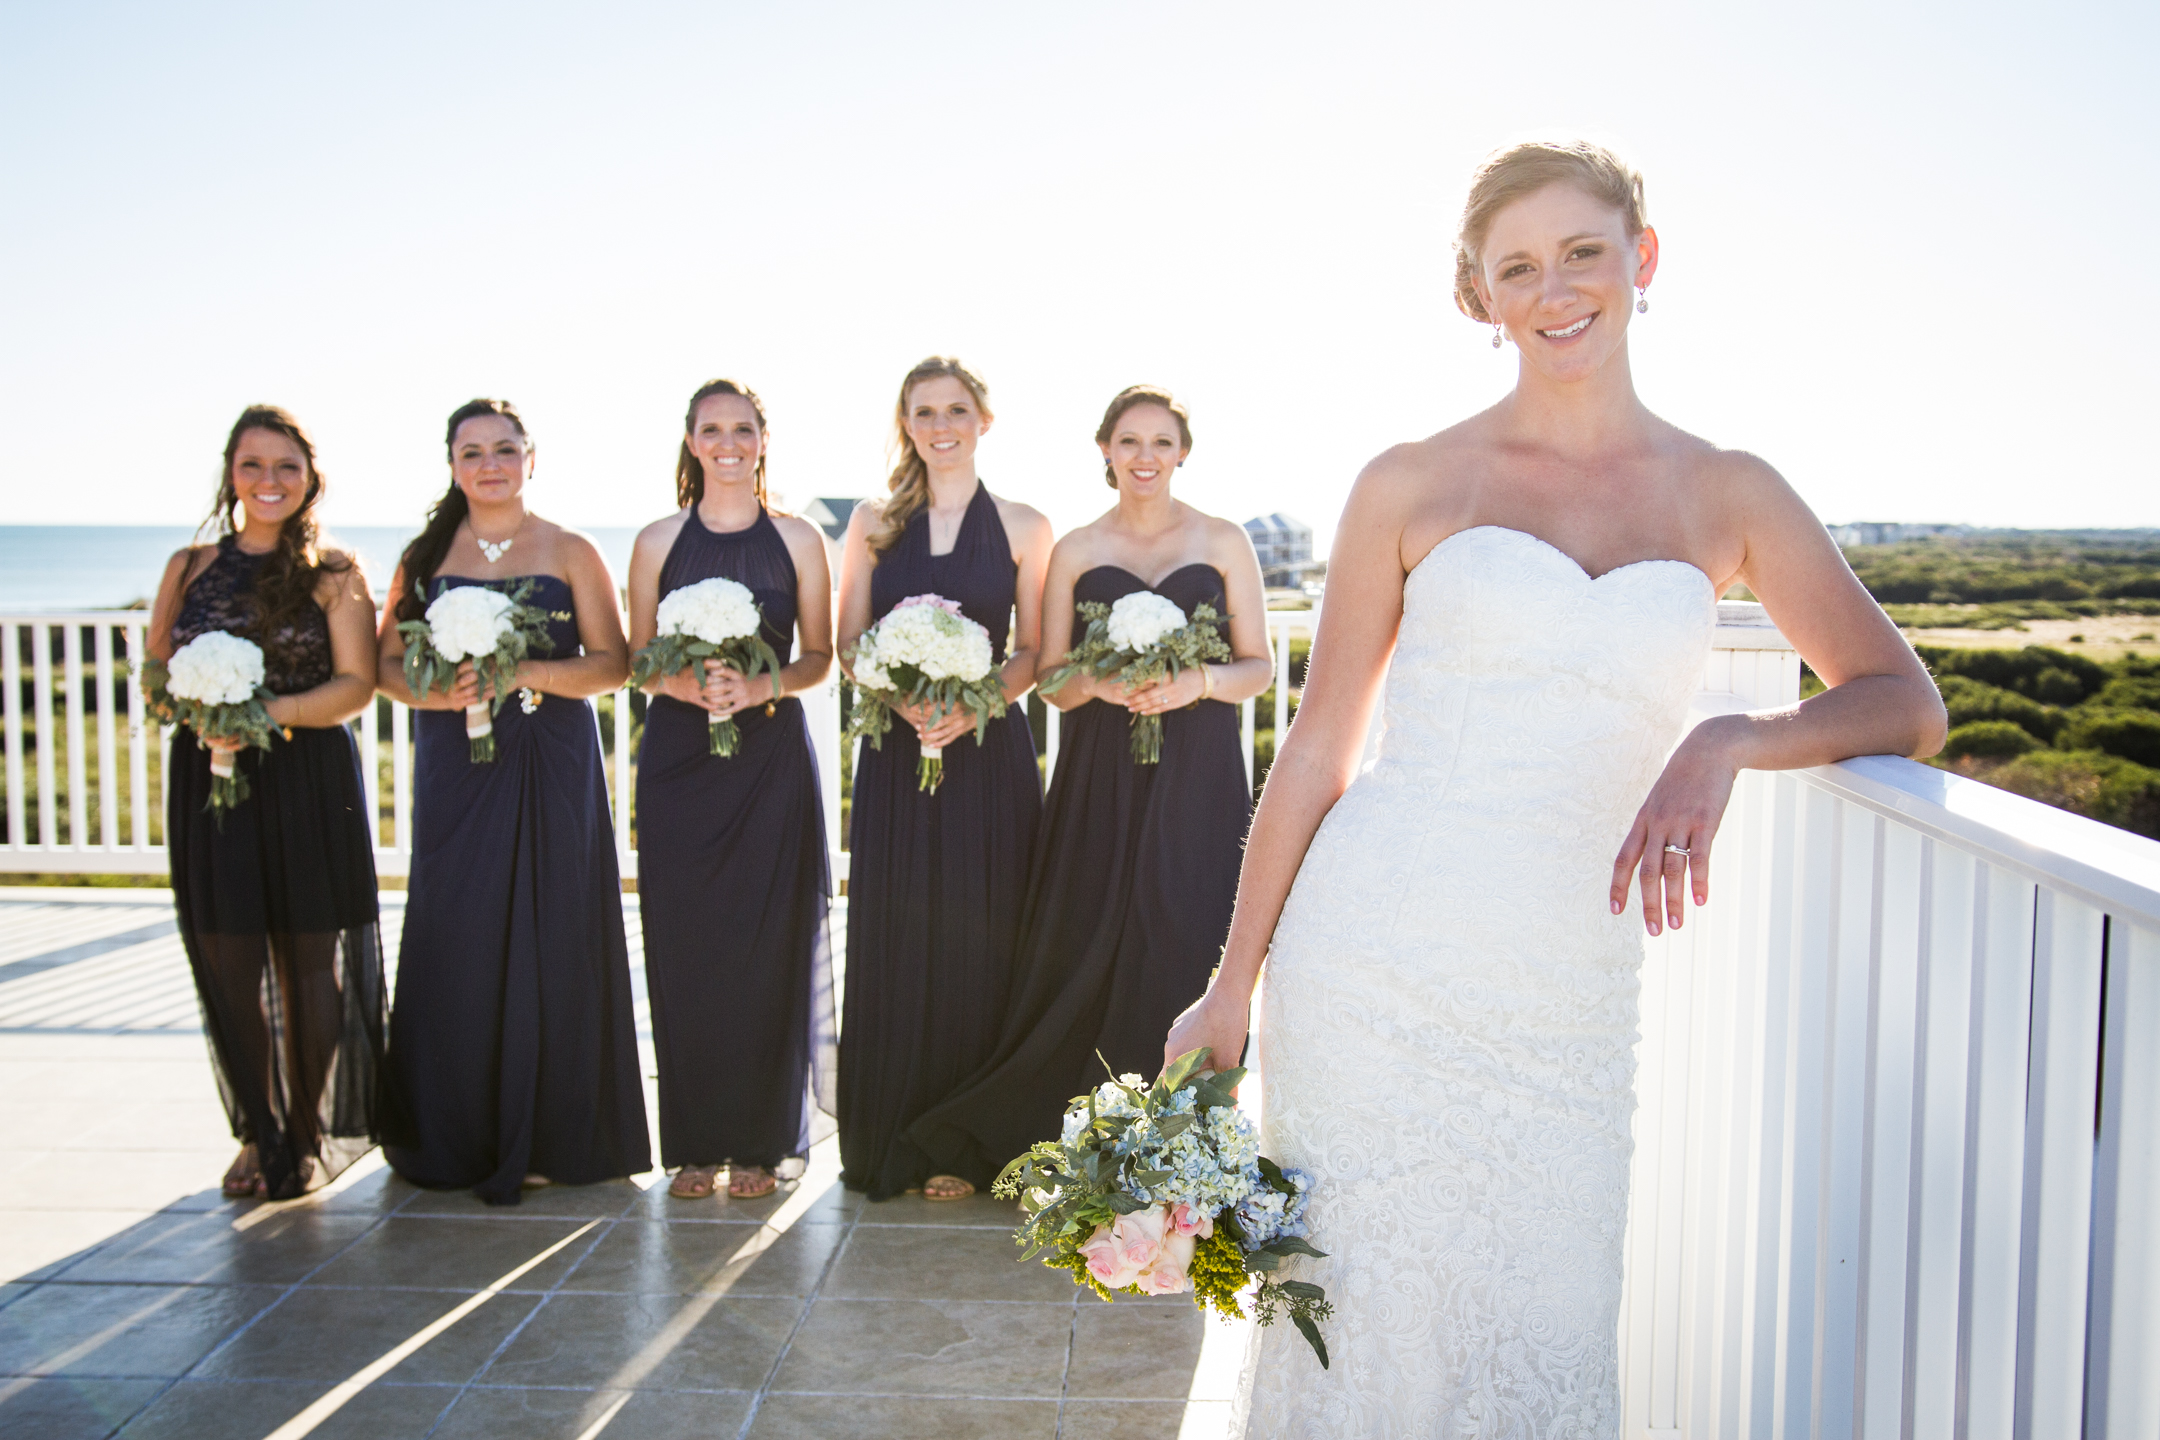 20151114_Stefanski_Wedding_MGM_0010.jpg